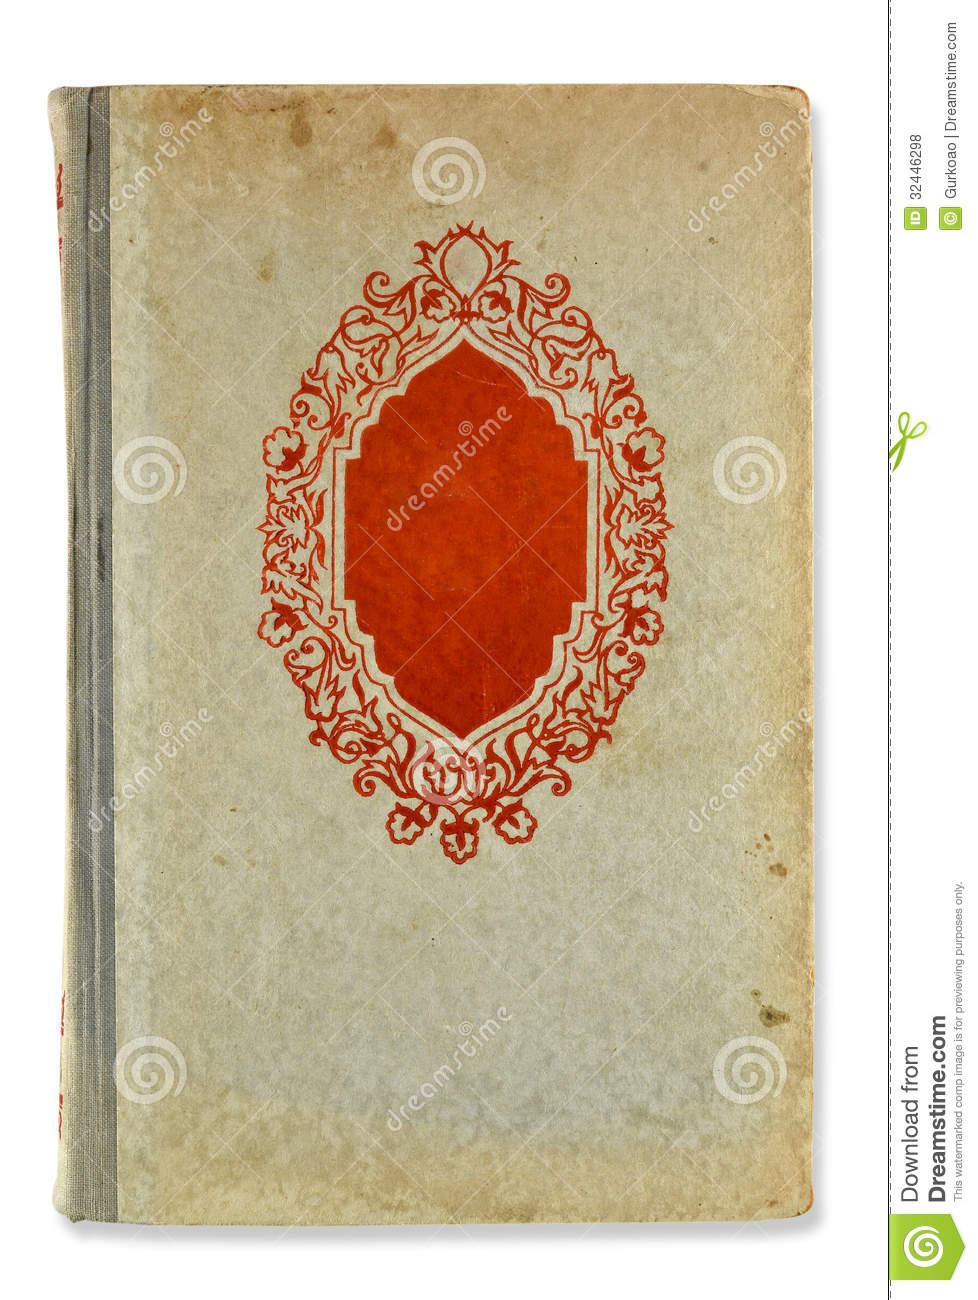 Old Book Cover Background ~ Old book cover royalty free stock photos image